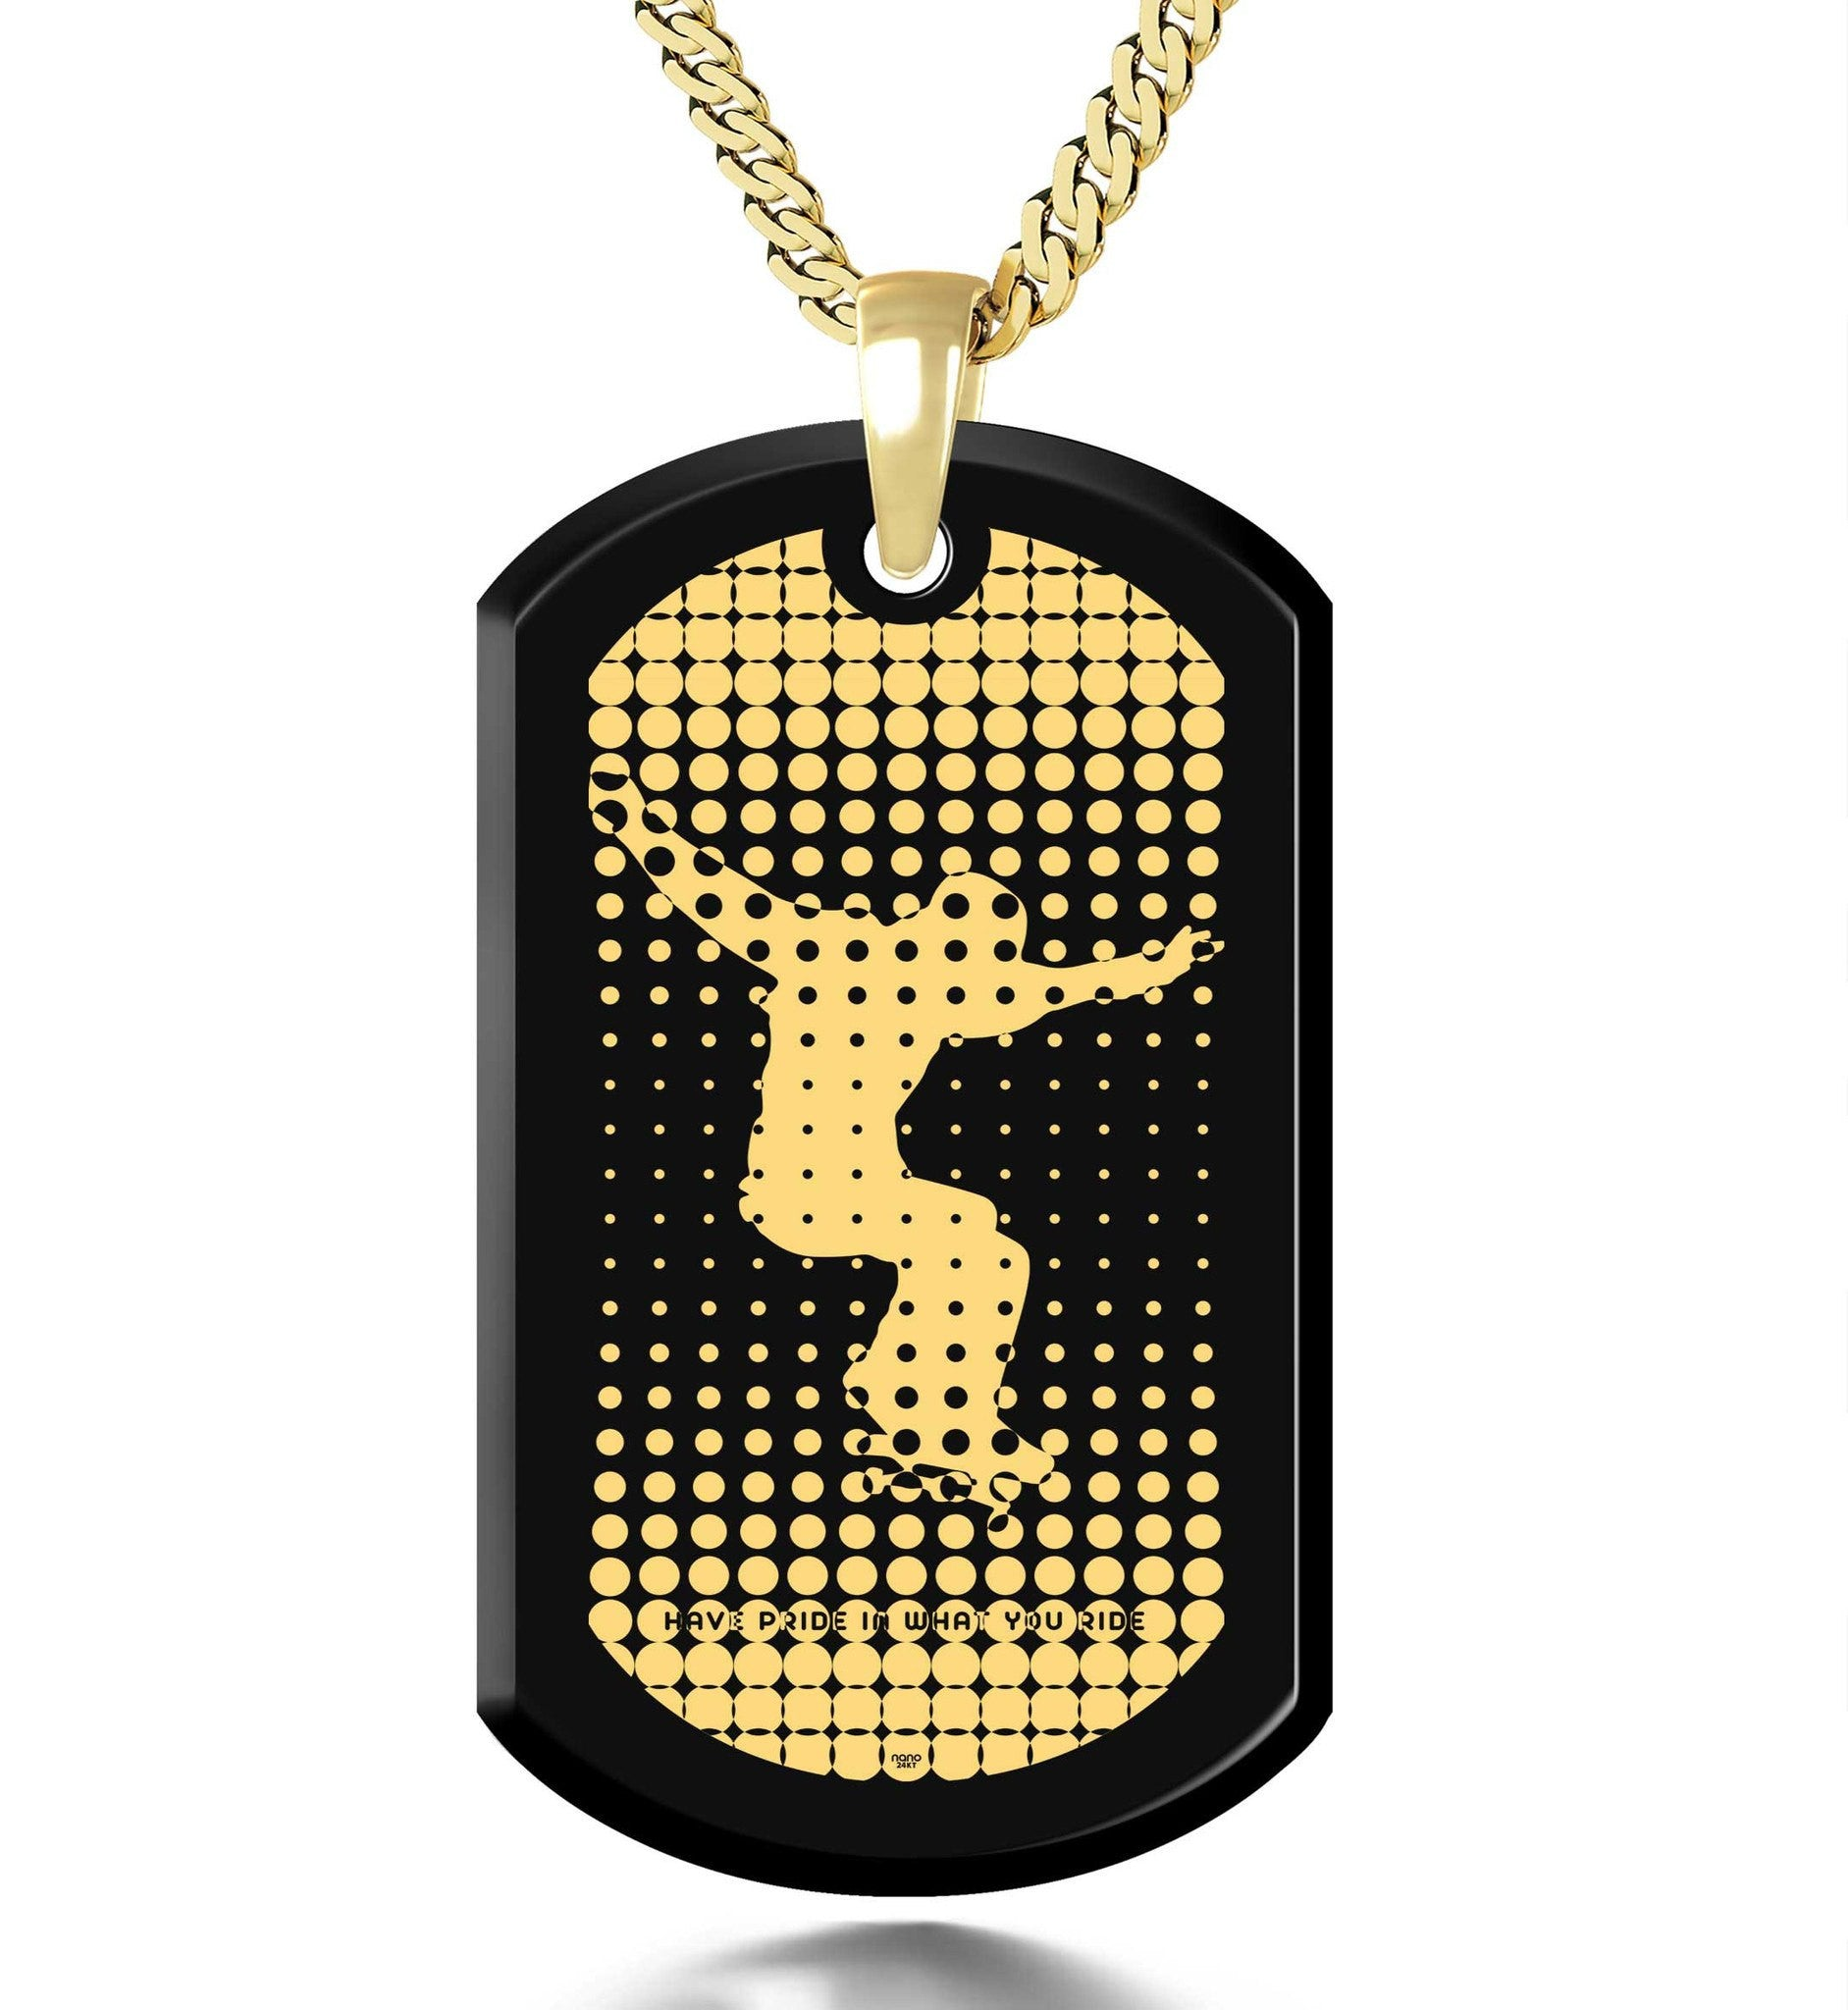 """Have Pride in What you Ride"", 3 Microns Gold Plated Necklace, Onyx"